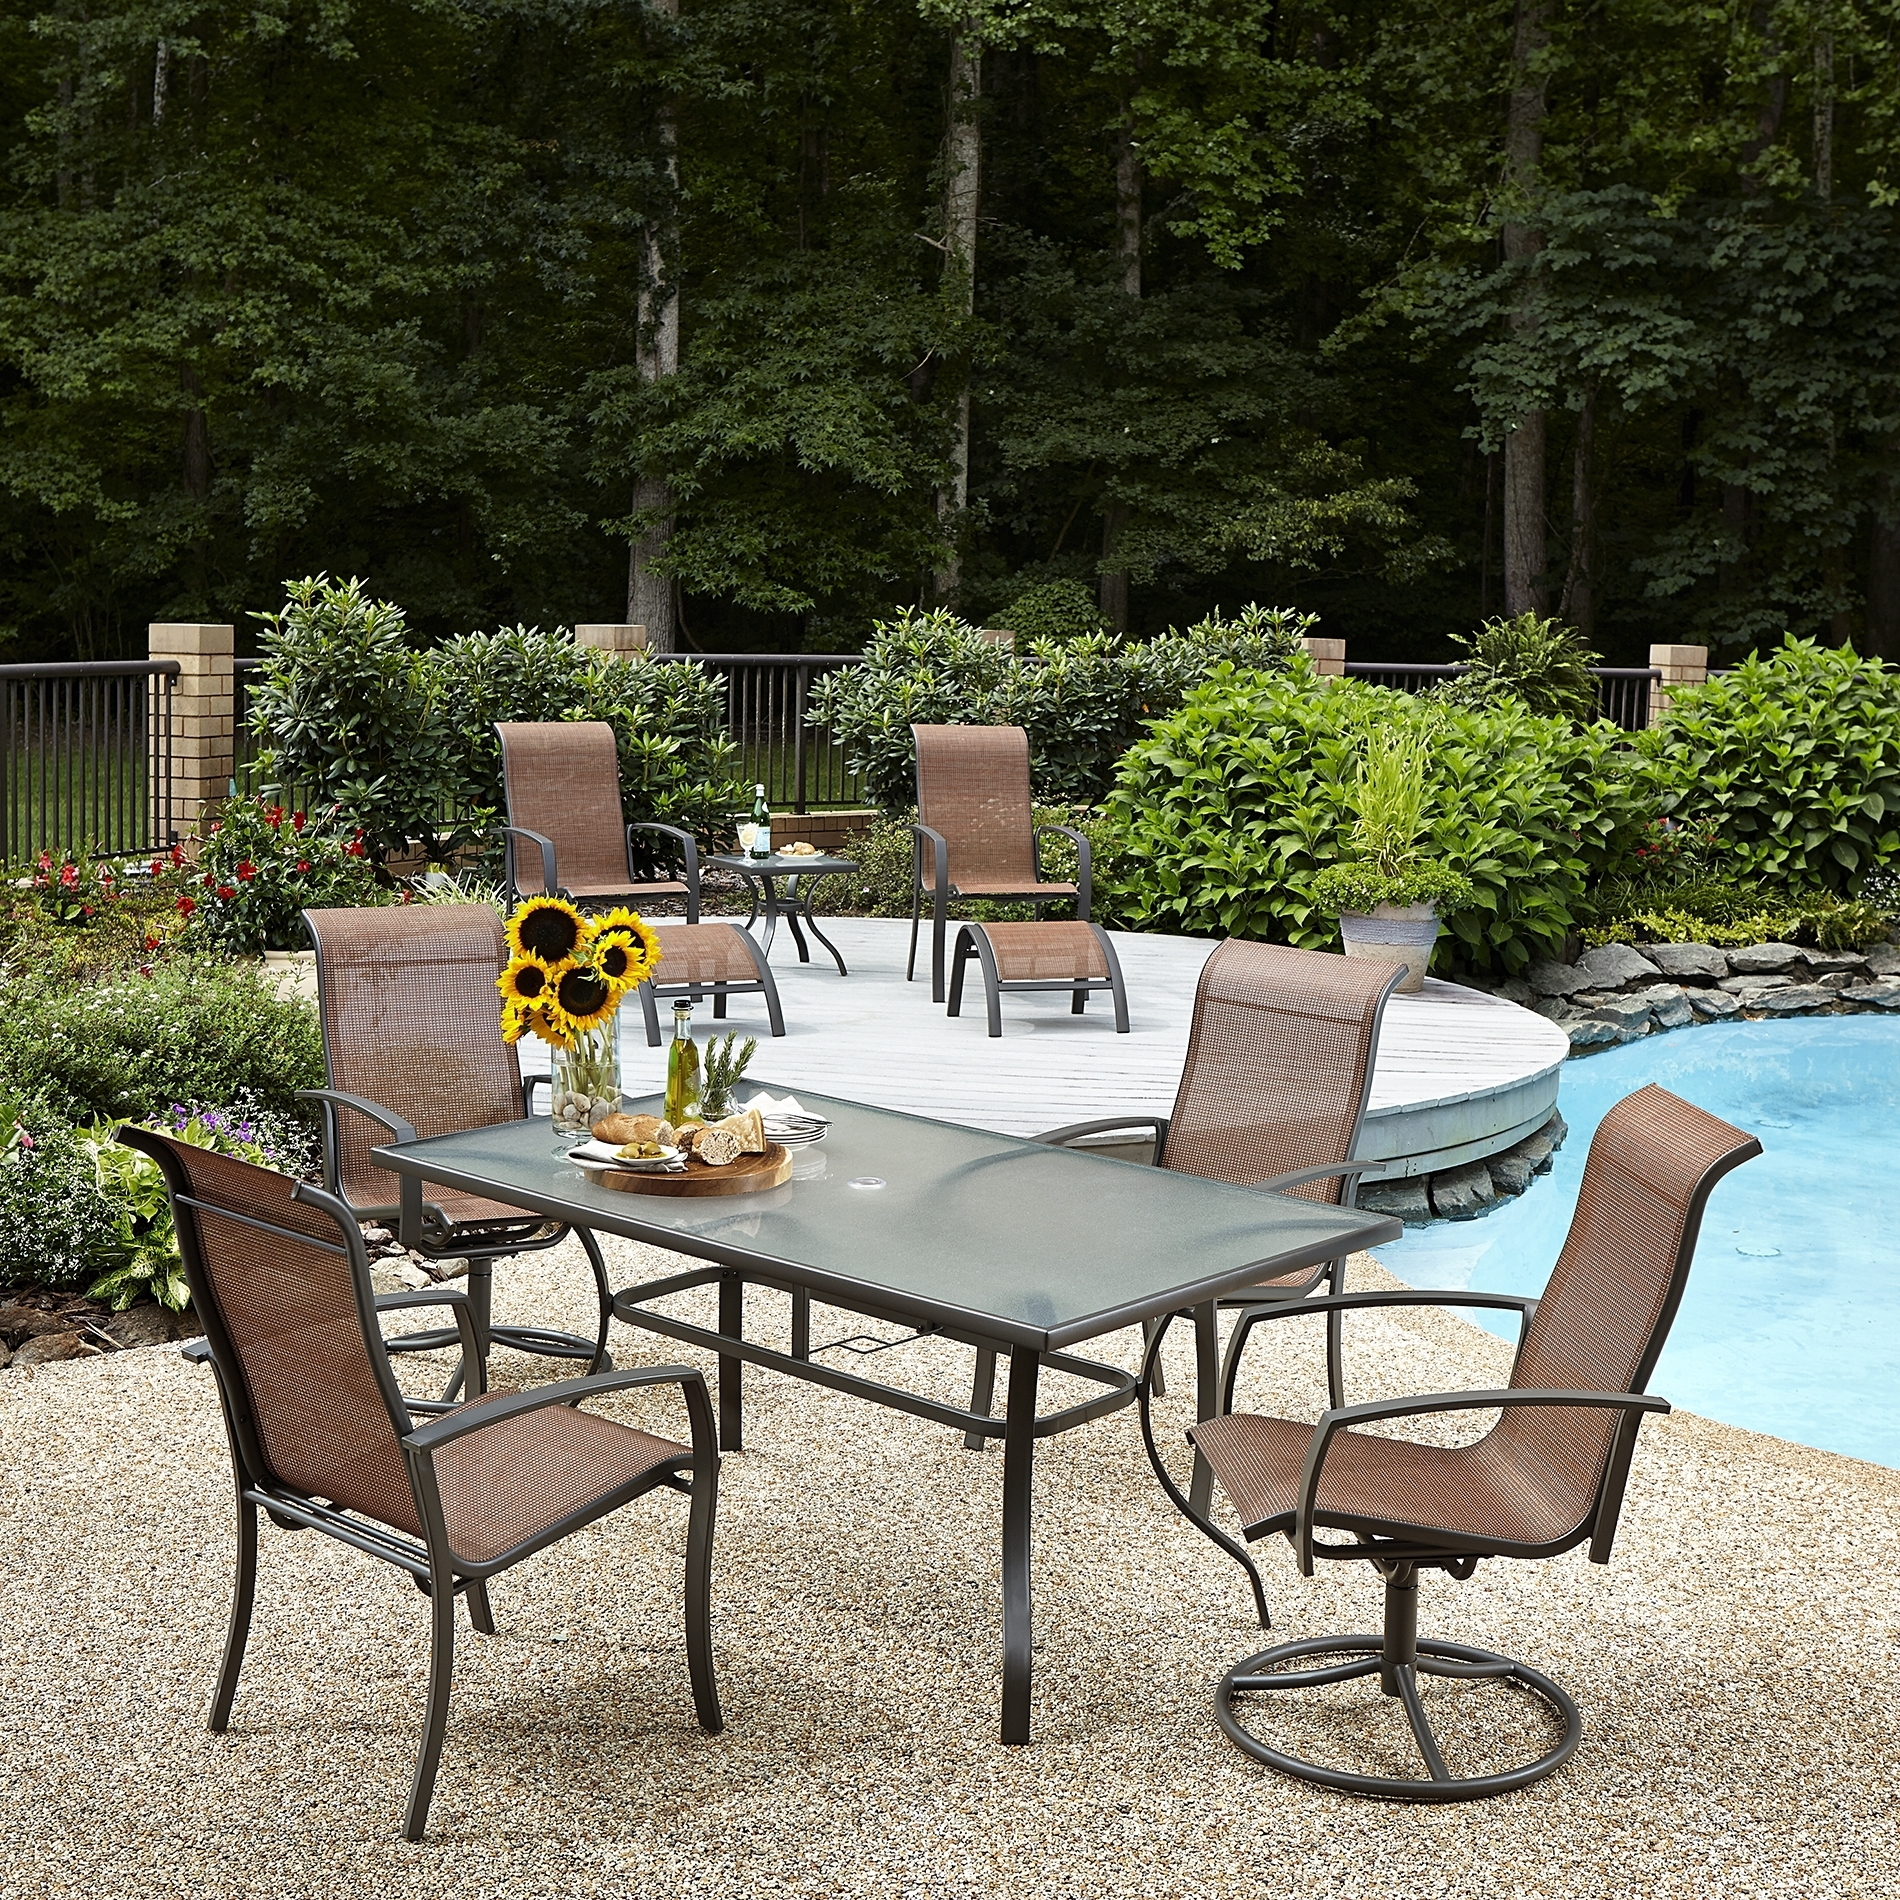 Famous Martha Stewart Conversation Patio Sets With Patio : Imposing Martha Stewart Patio Furniture Pictures Ideas (View 4 of 20)